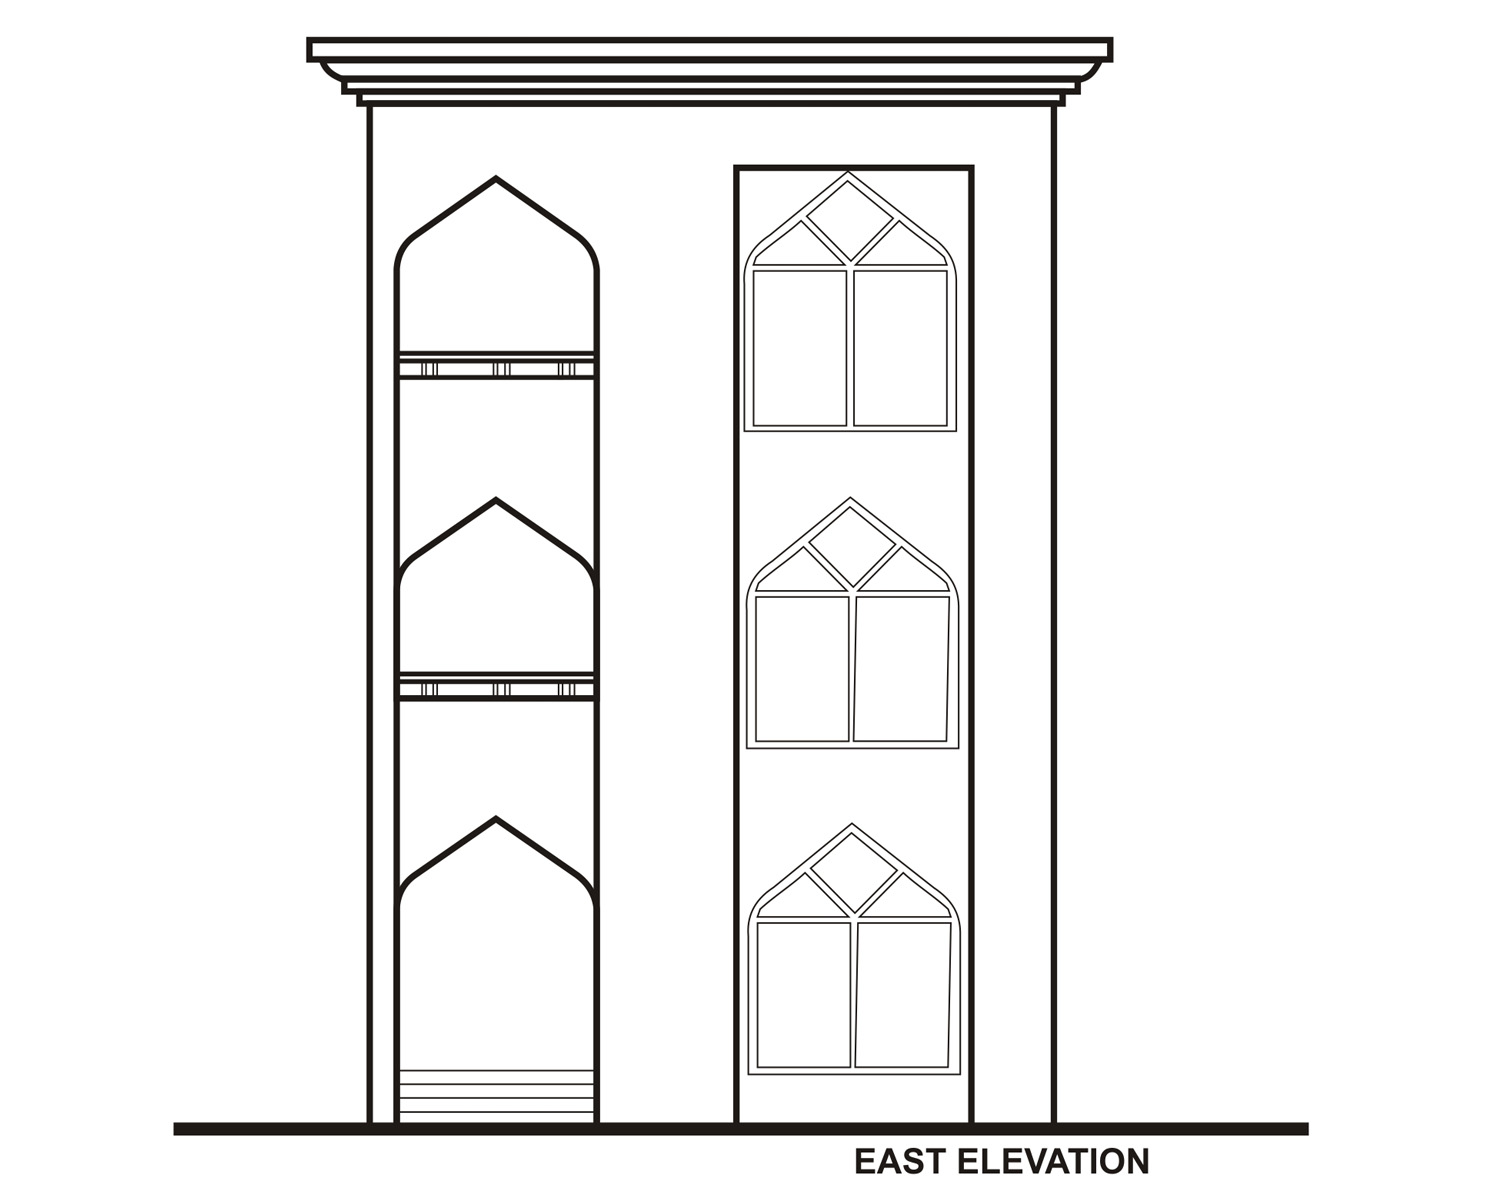 8East Elevation